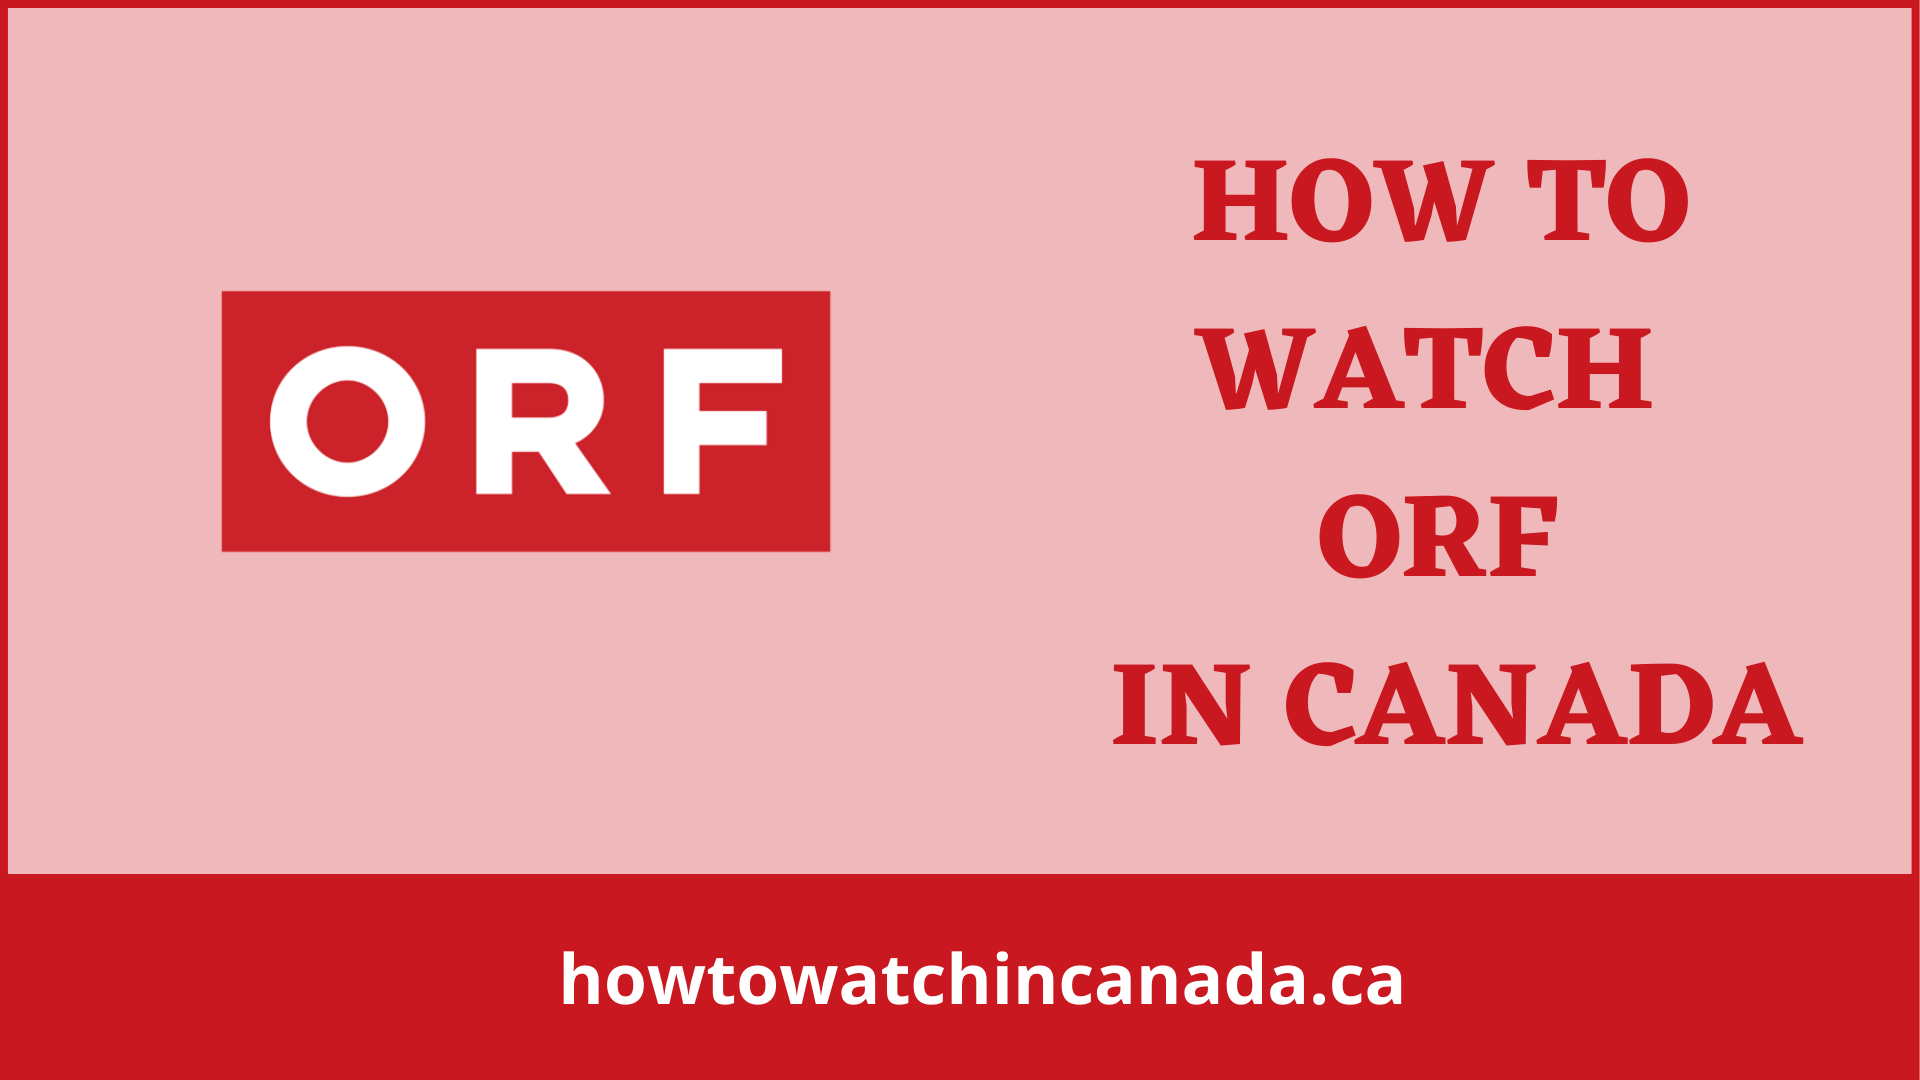 orf-feat-how-to-watch-in-canada